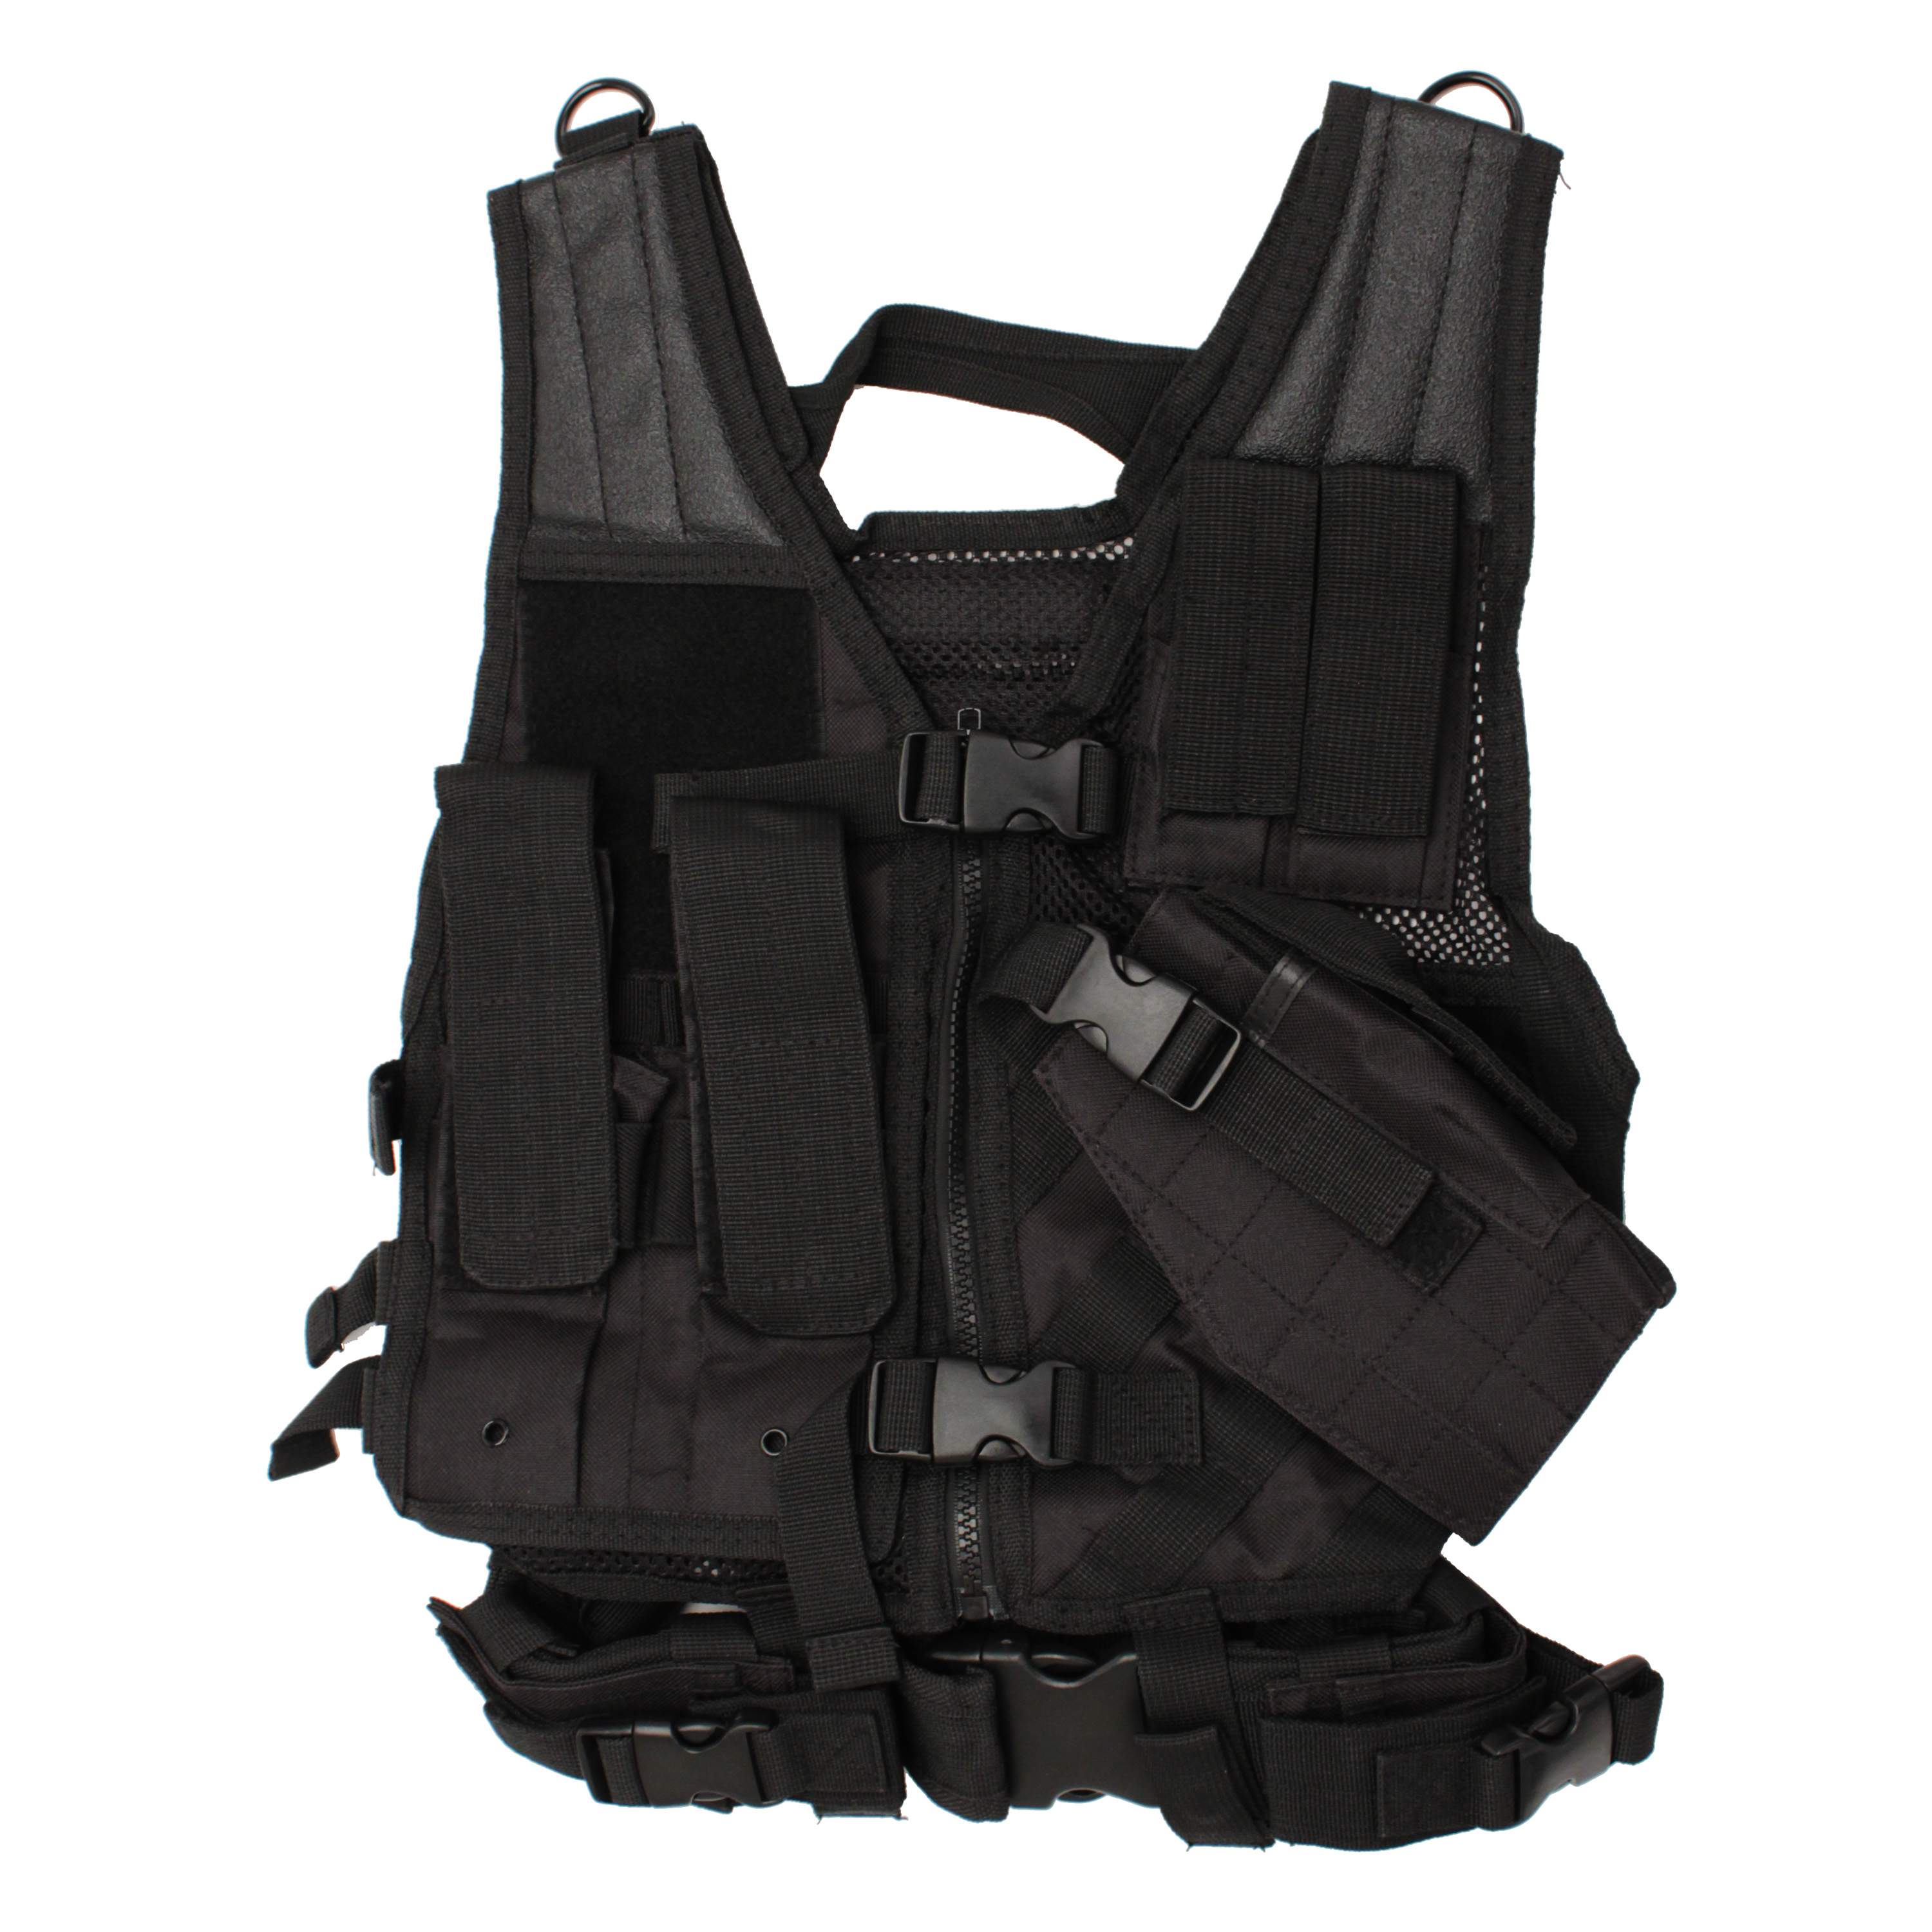 Vism Childrens Tactical Vest, Black CTVC2916B Multi-Colored